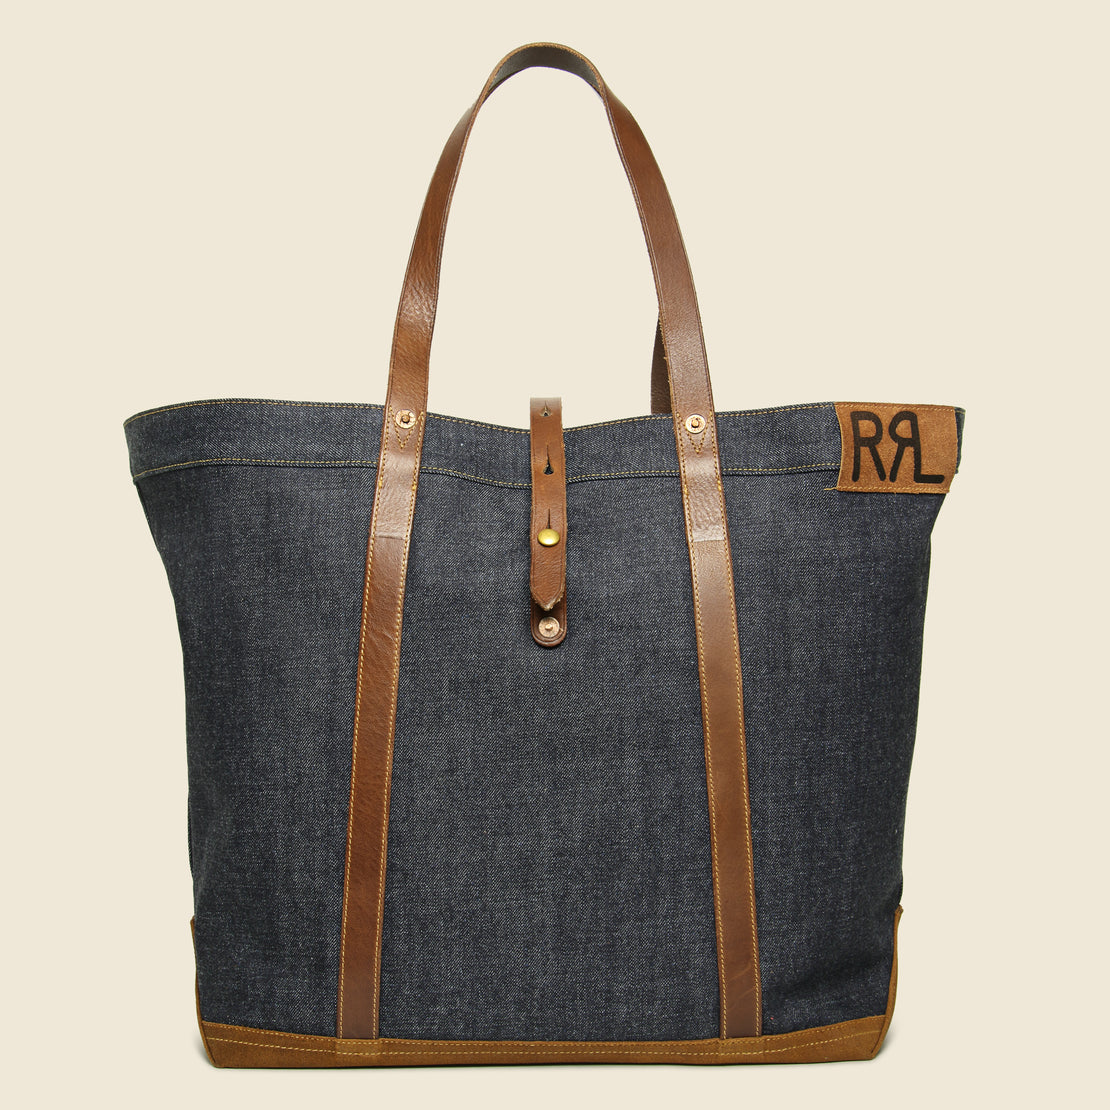 RRL Howard Tote Bag - Denim/Leather